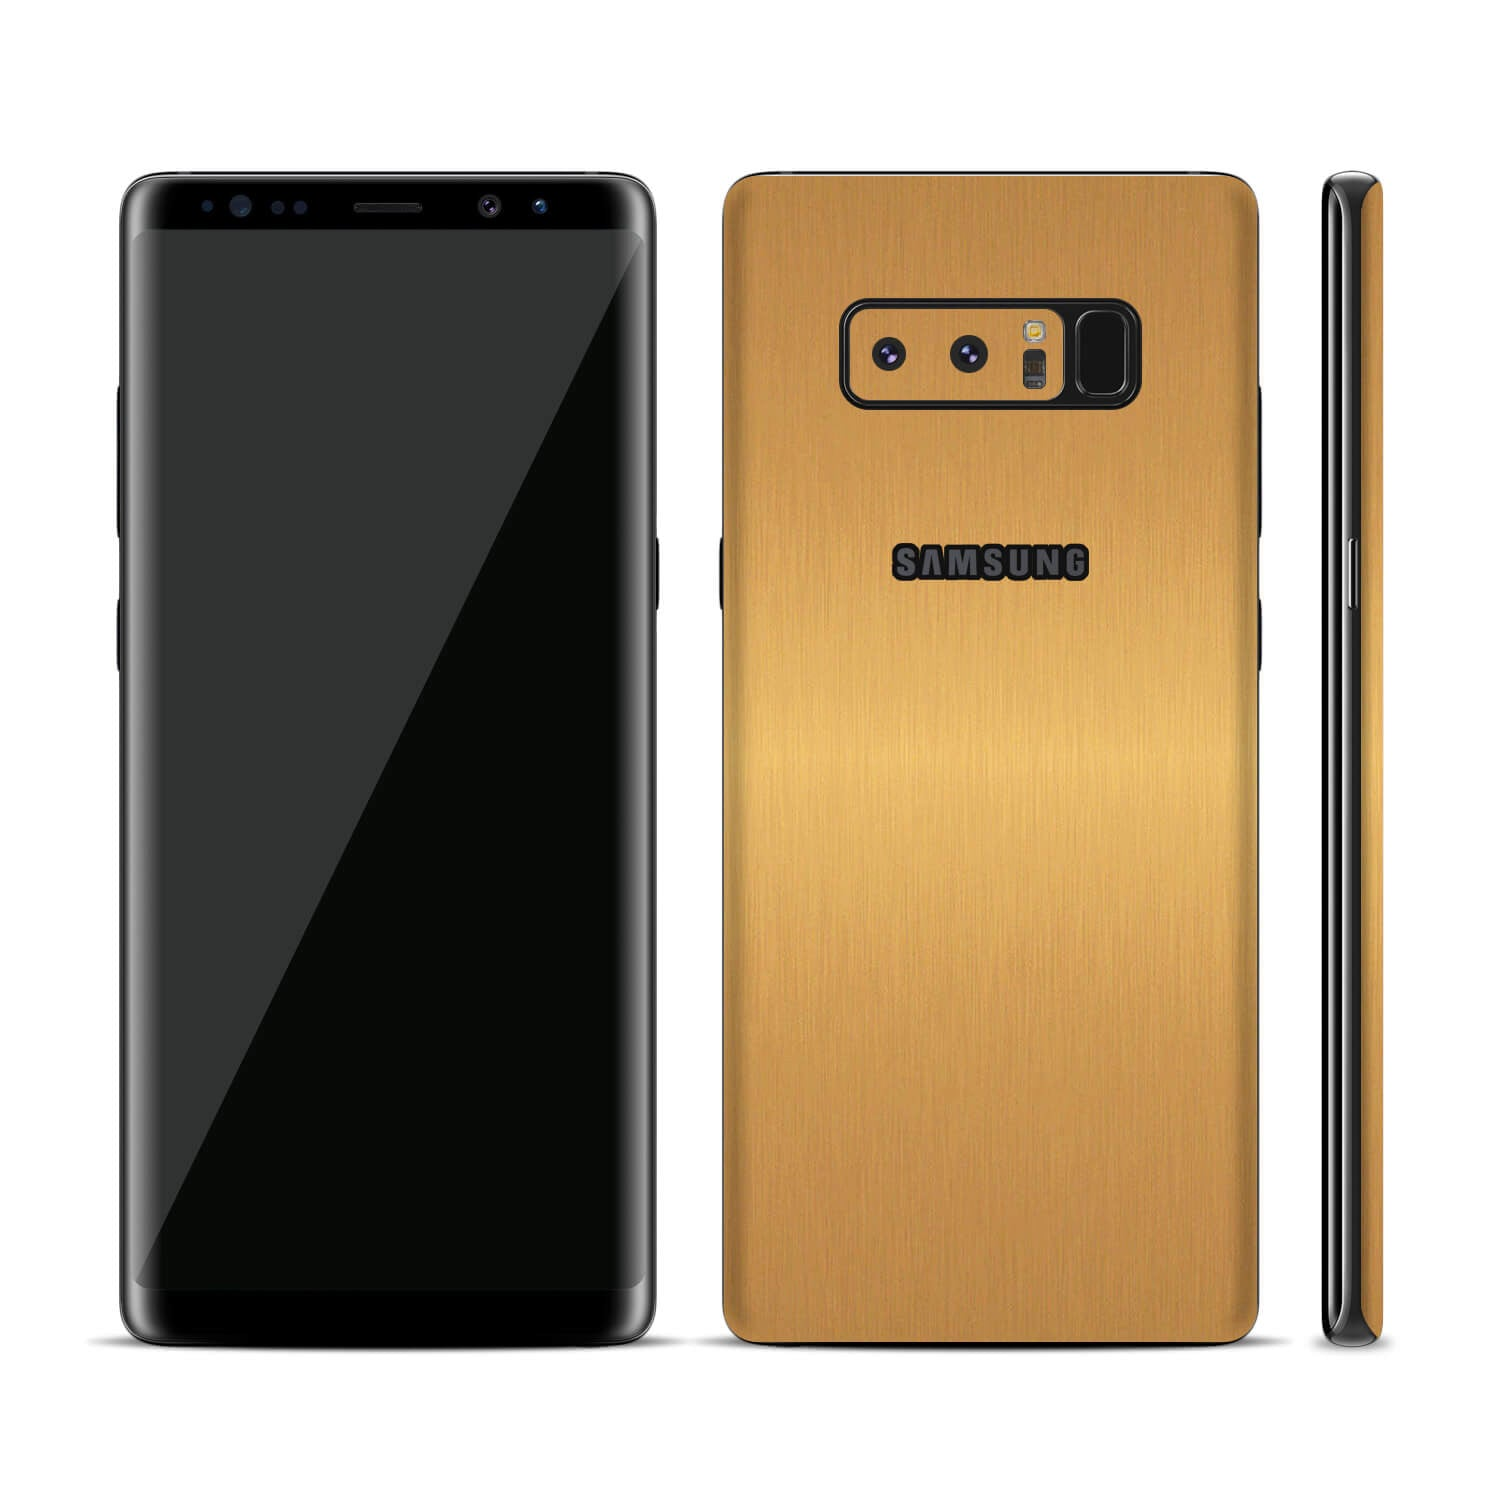 Samsung Galaxy Note 8 Skins And Wraps